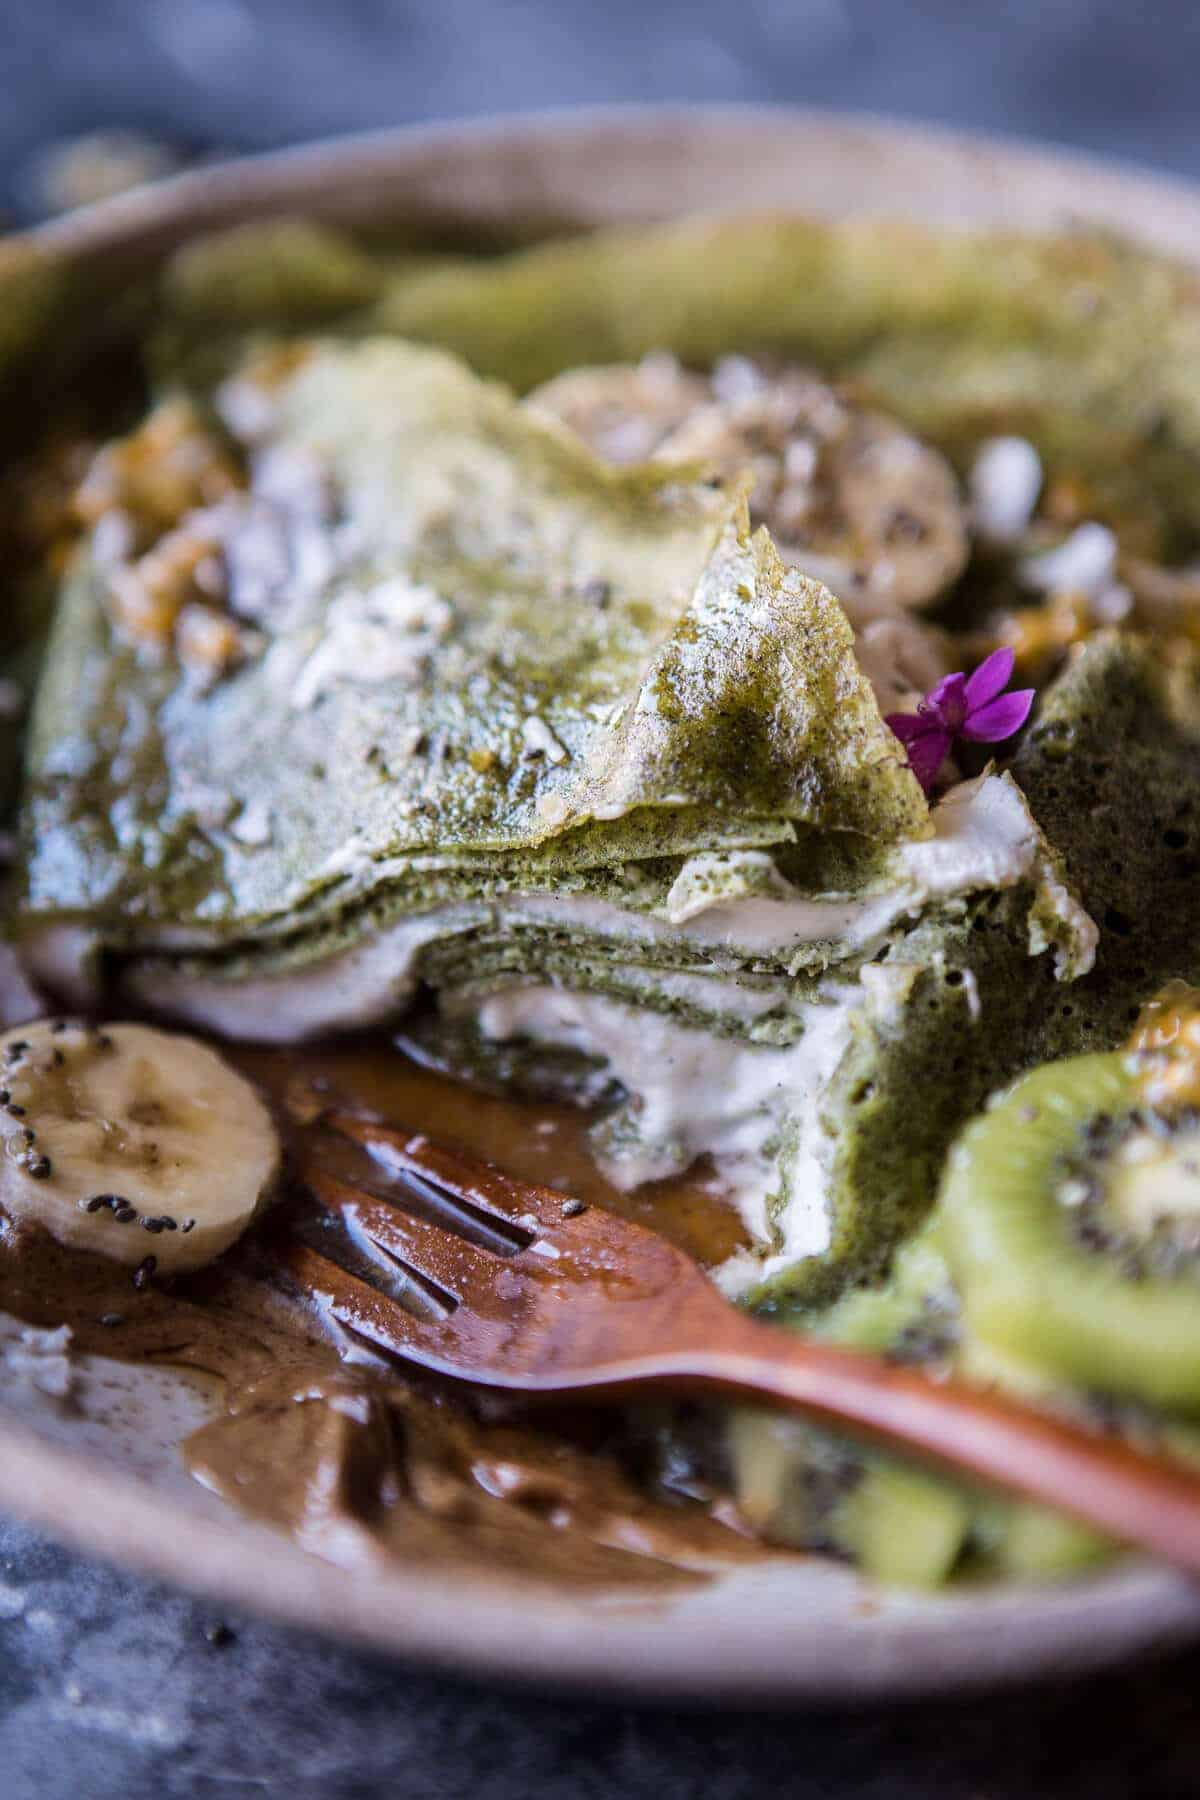 Green Banana Crepes with Whipped Greek Yogurt | halfbakedharvest.com @hbharvest